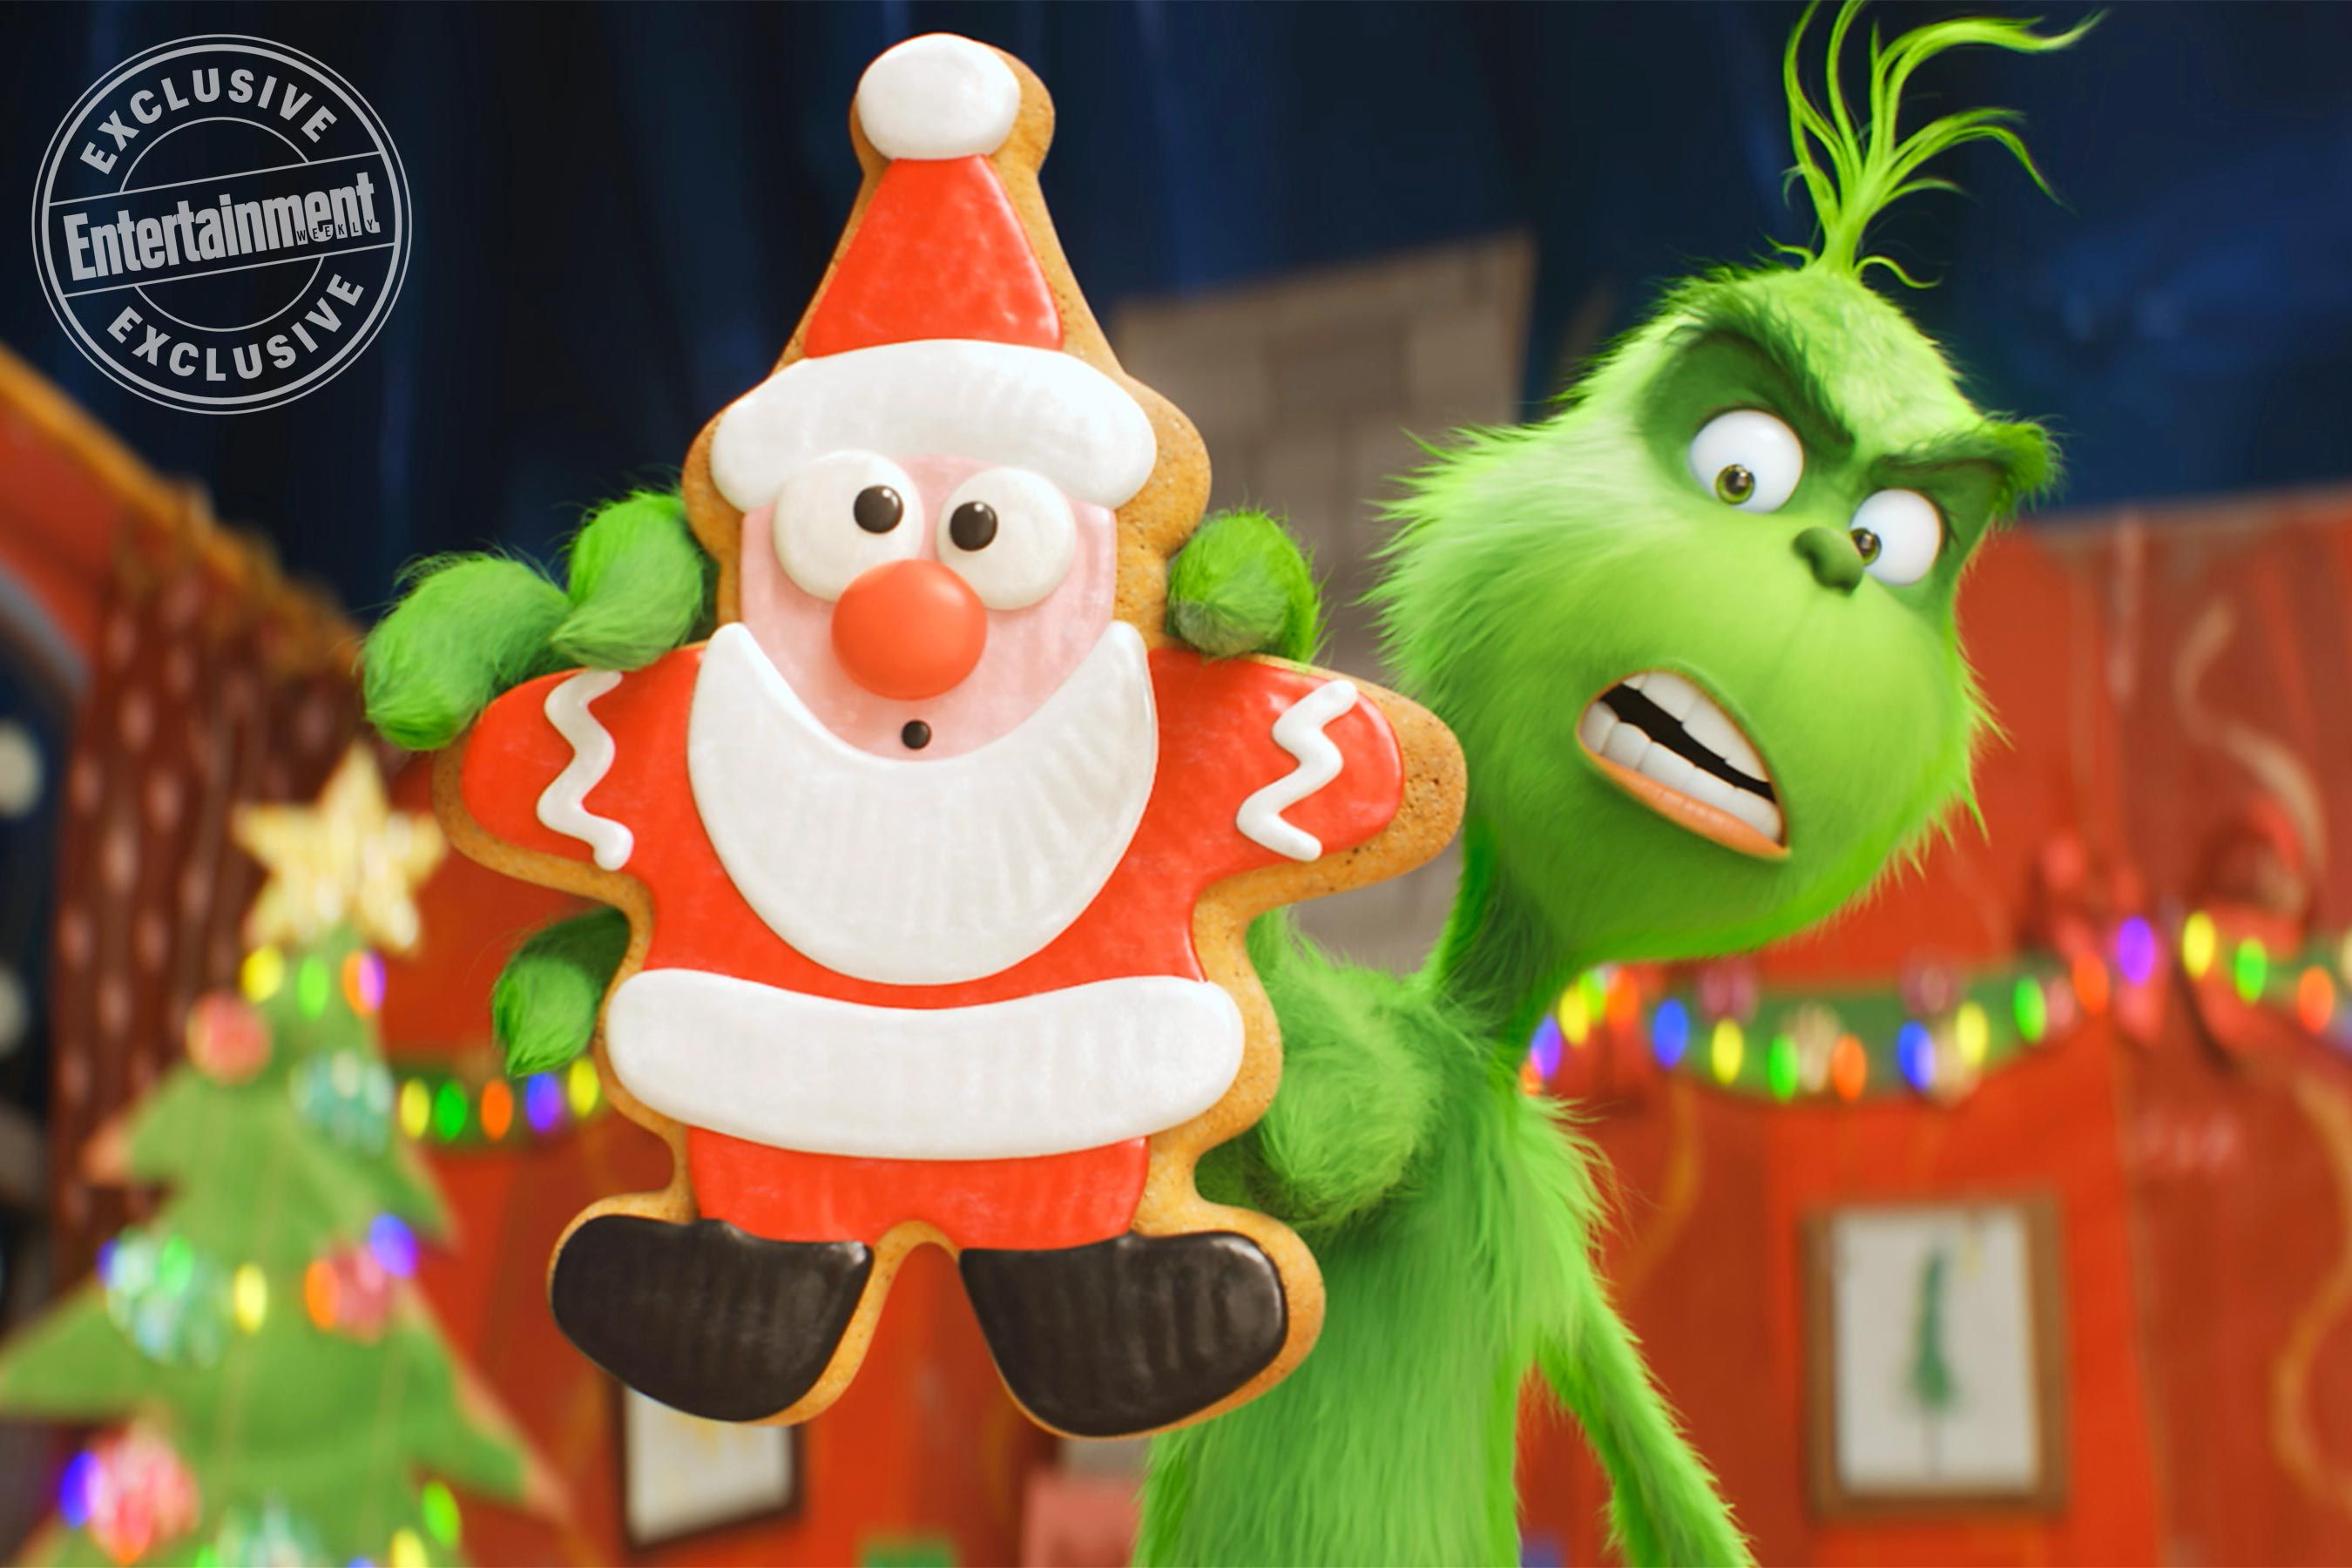 Dr Seuss The Grinch 2018 Photo The Grinch Movie Christmas Tale Grinch